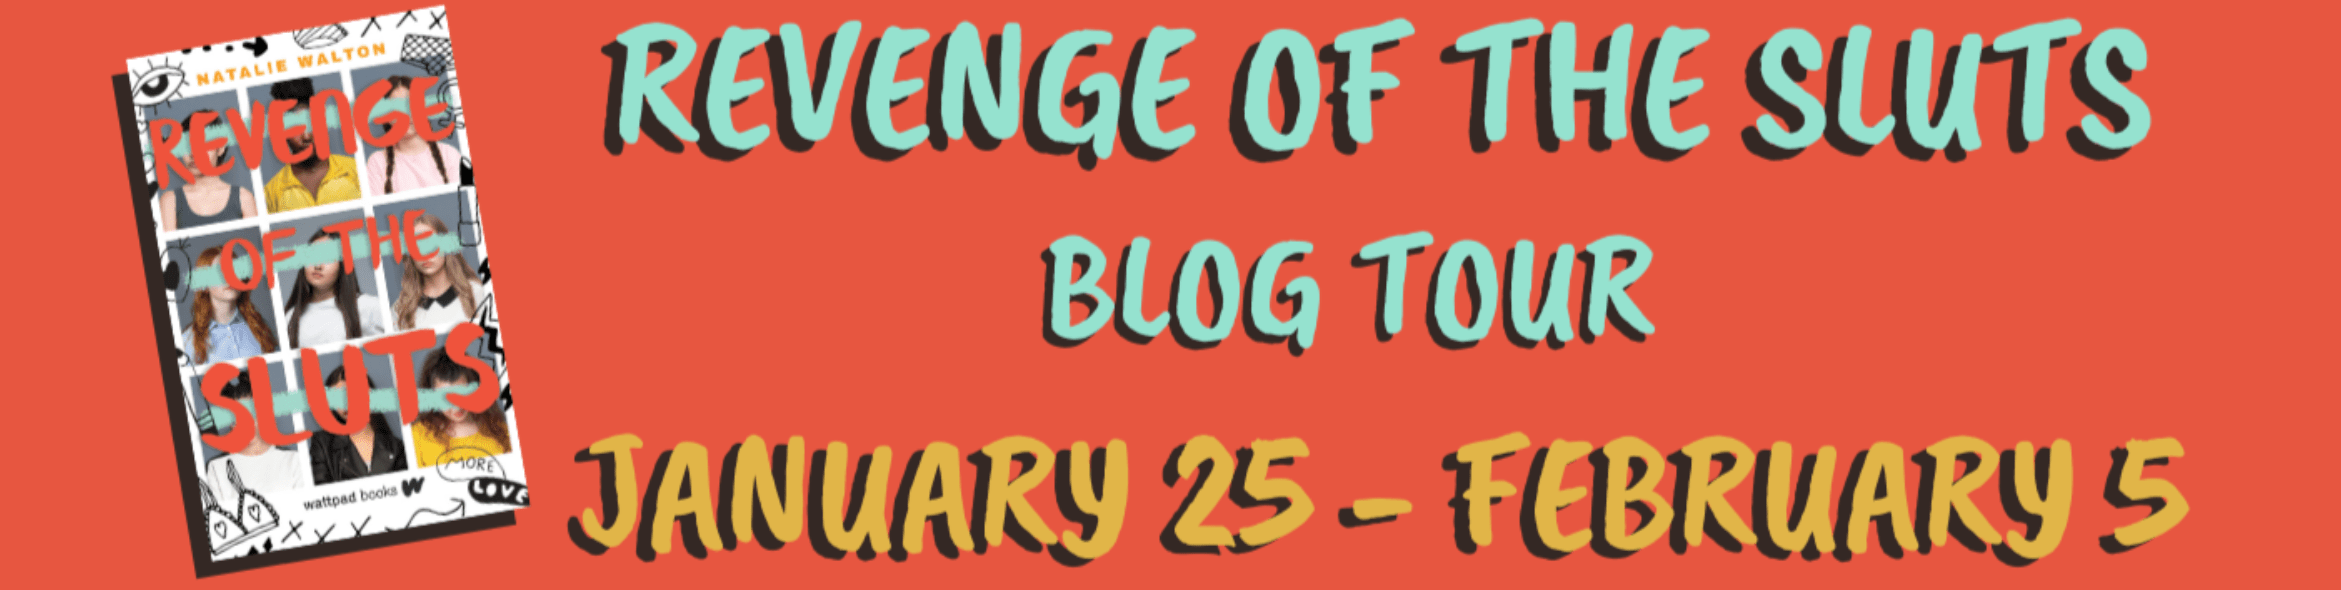 Blog Tour: Revenge of the Sluts by Natalie Walton (Interview + Bookstagram!)